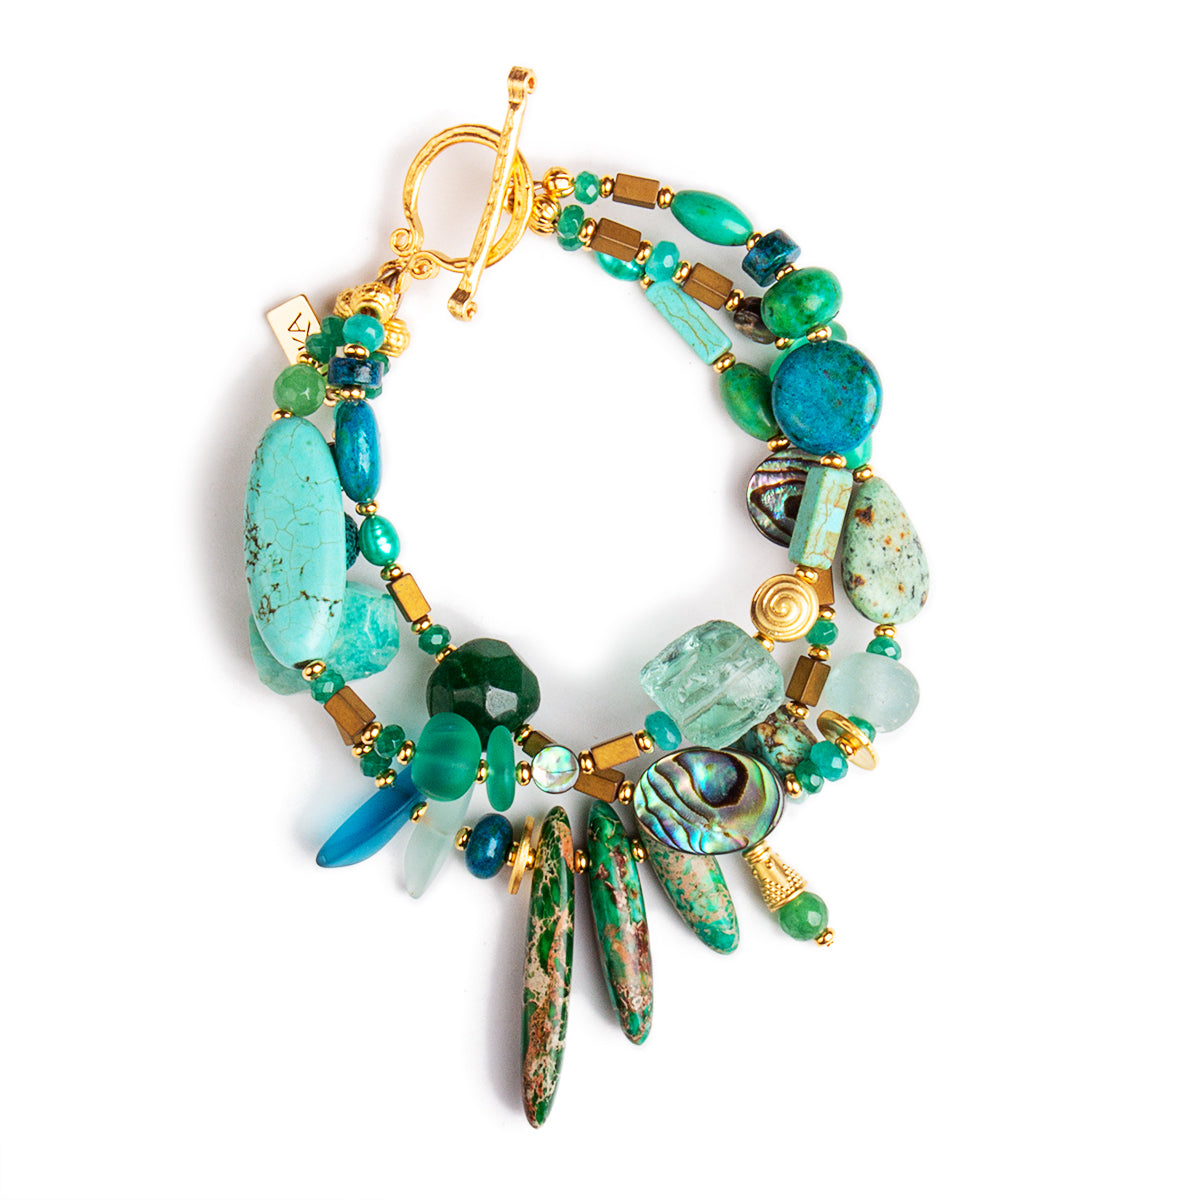 N°622 Pacifica Wild Things Statement Bracelet